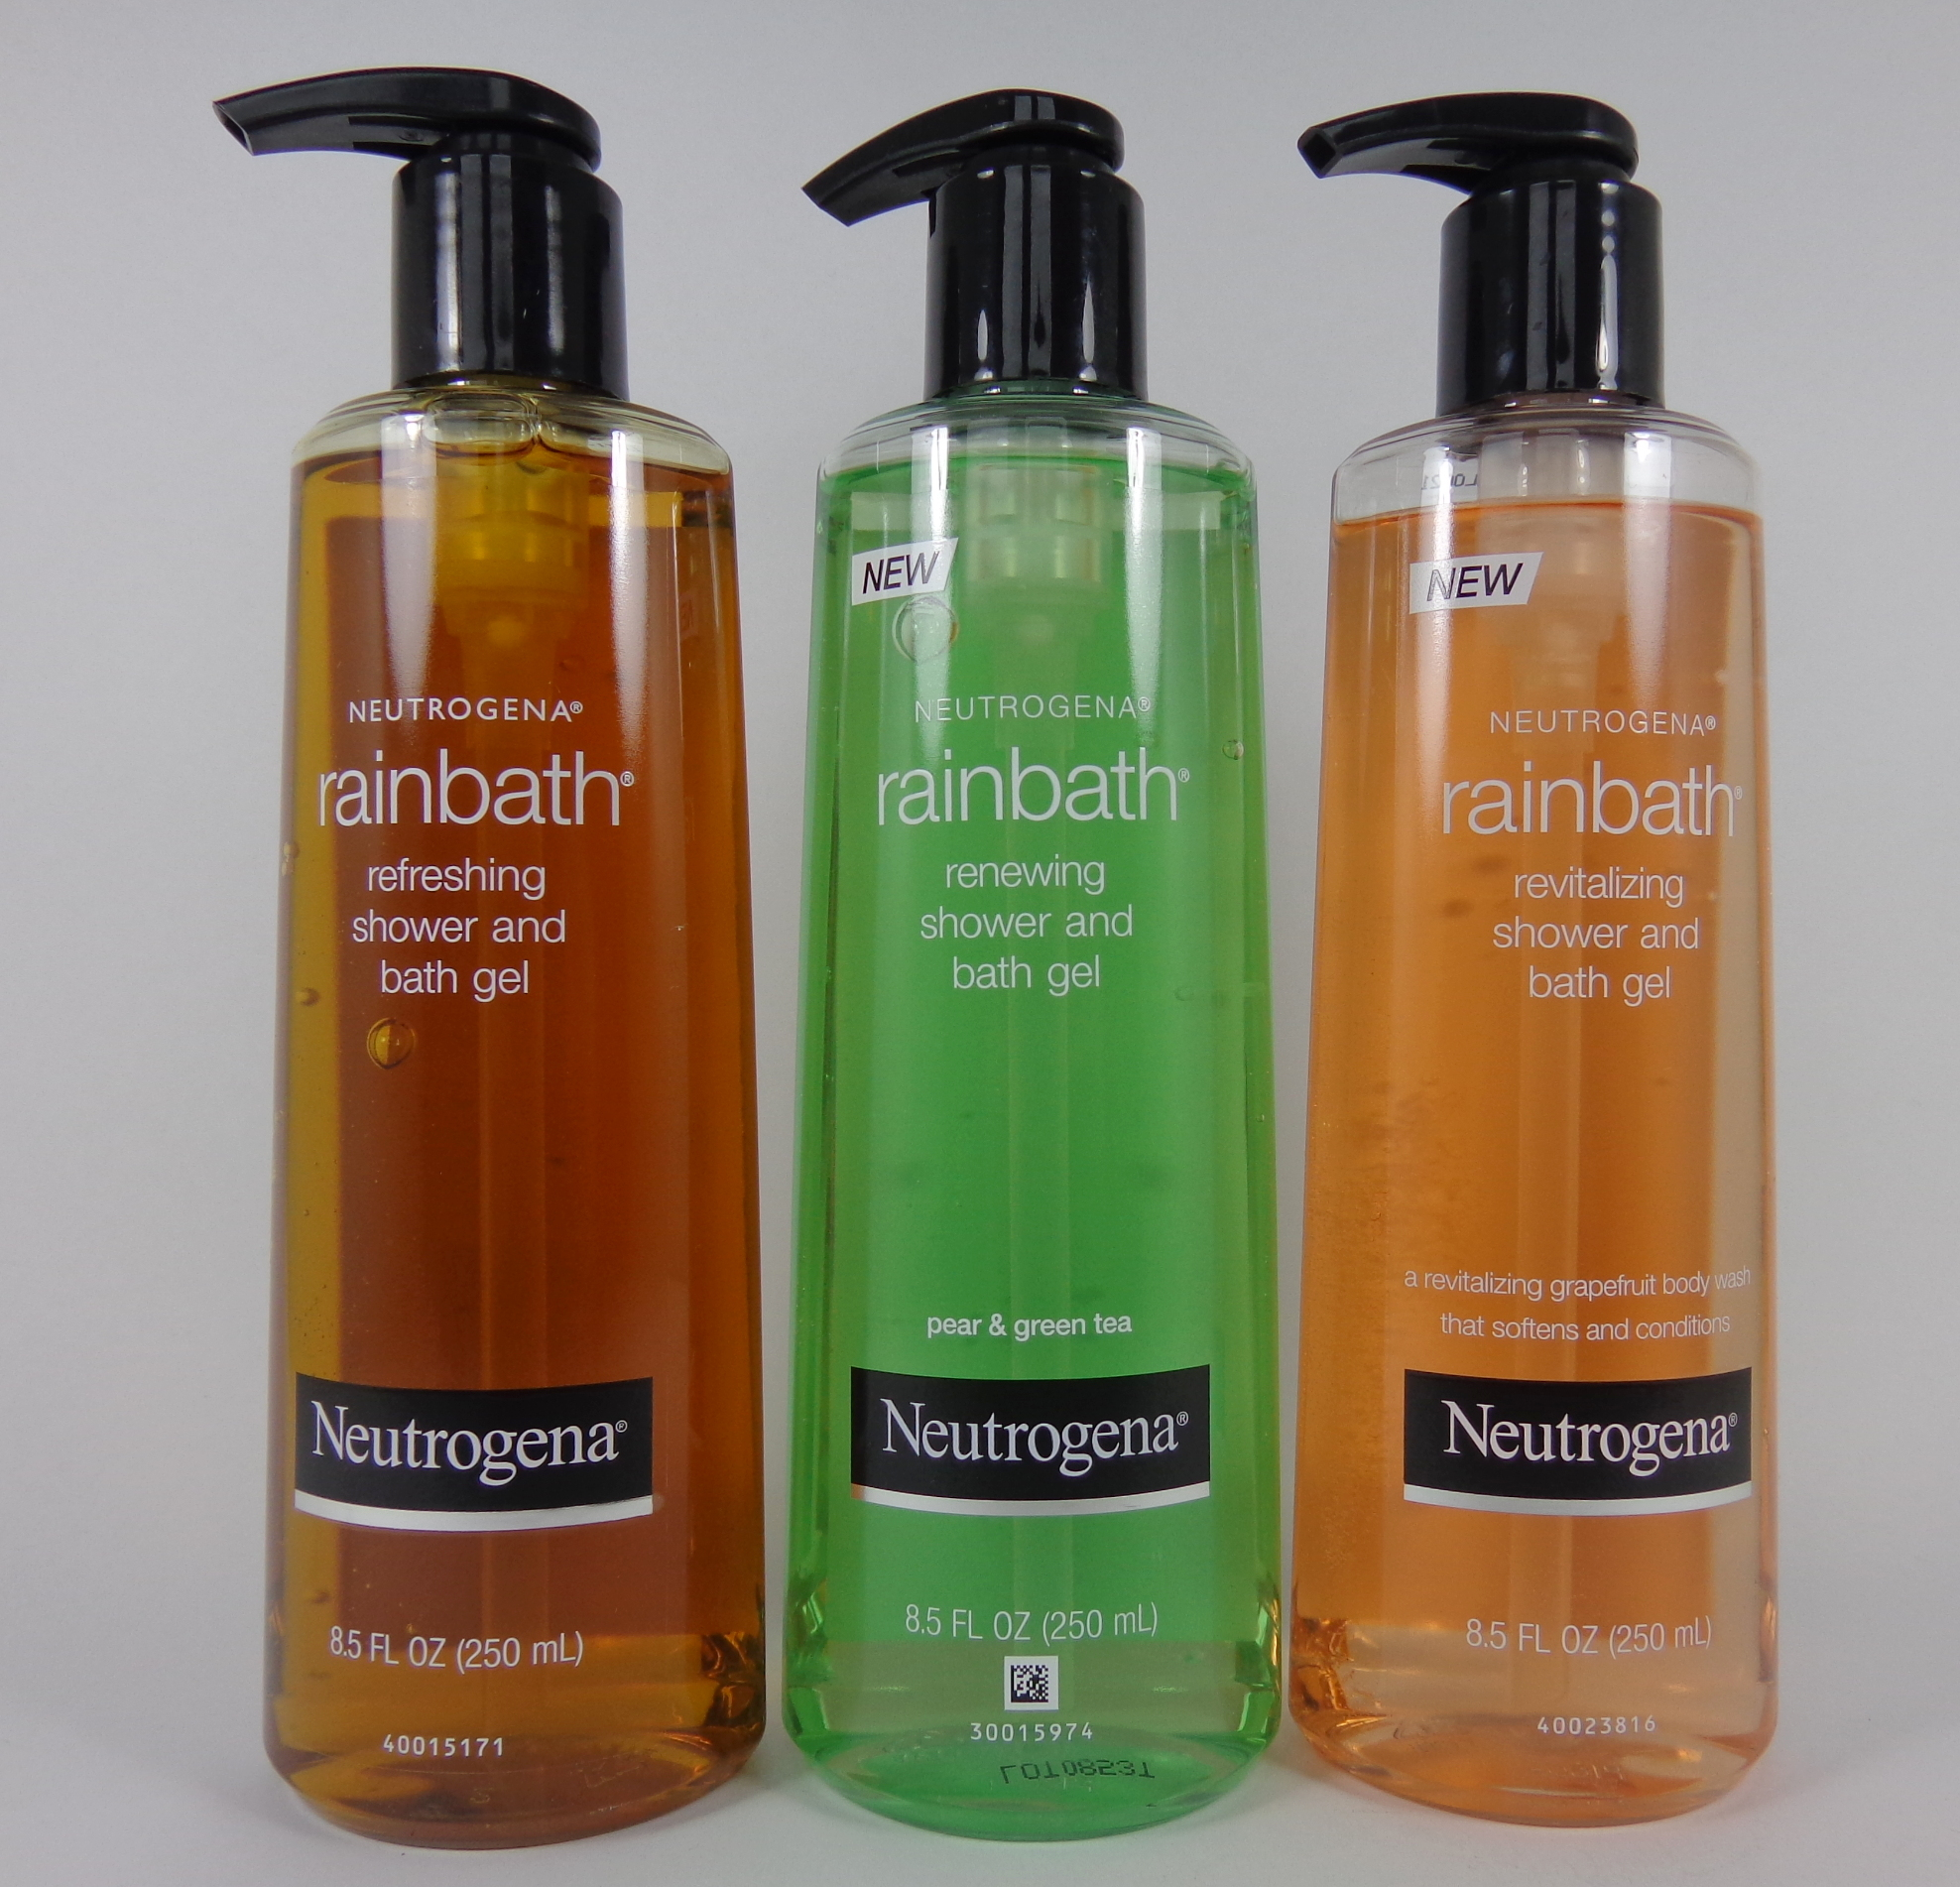 review neutrogena rainbath shower and bath gels my